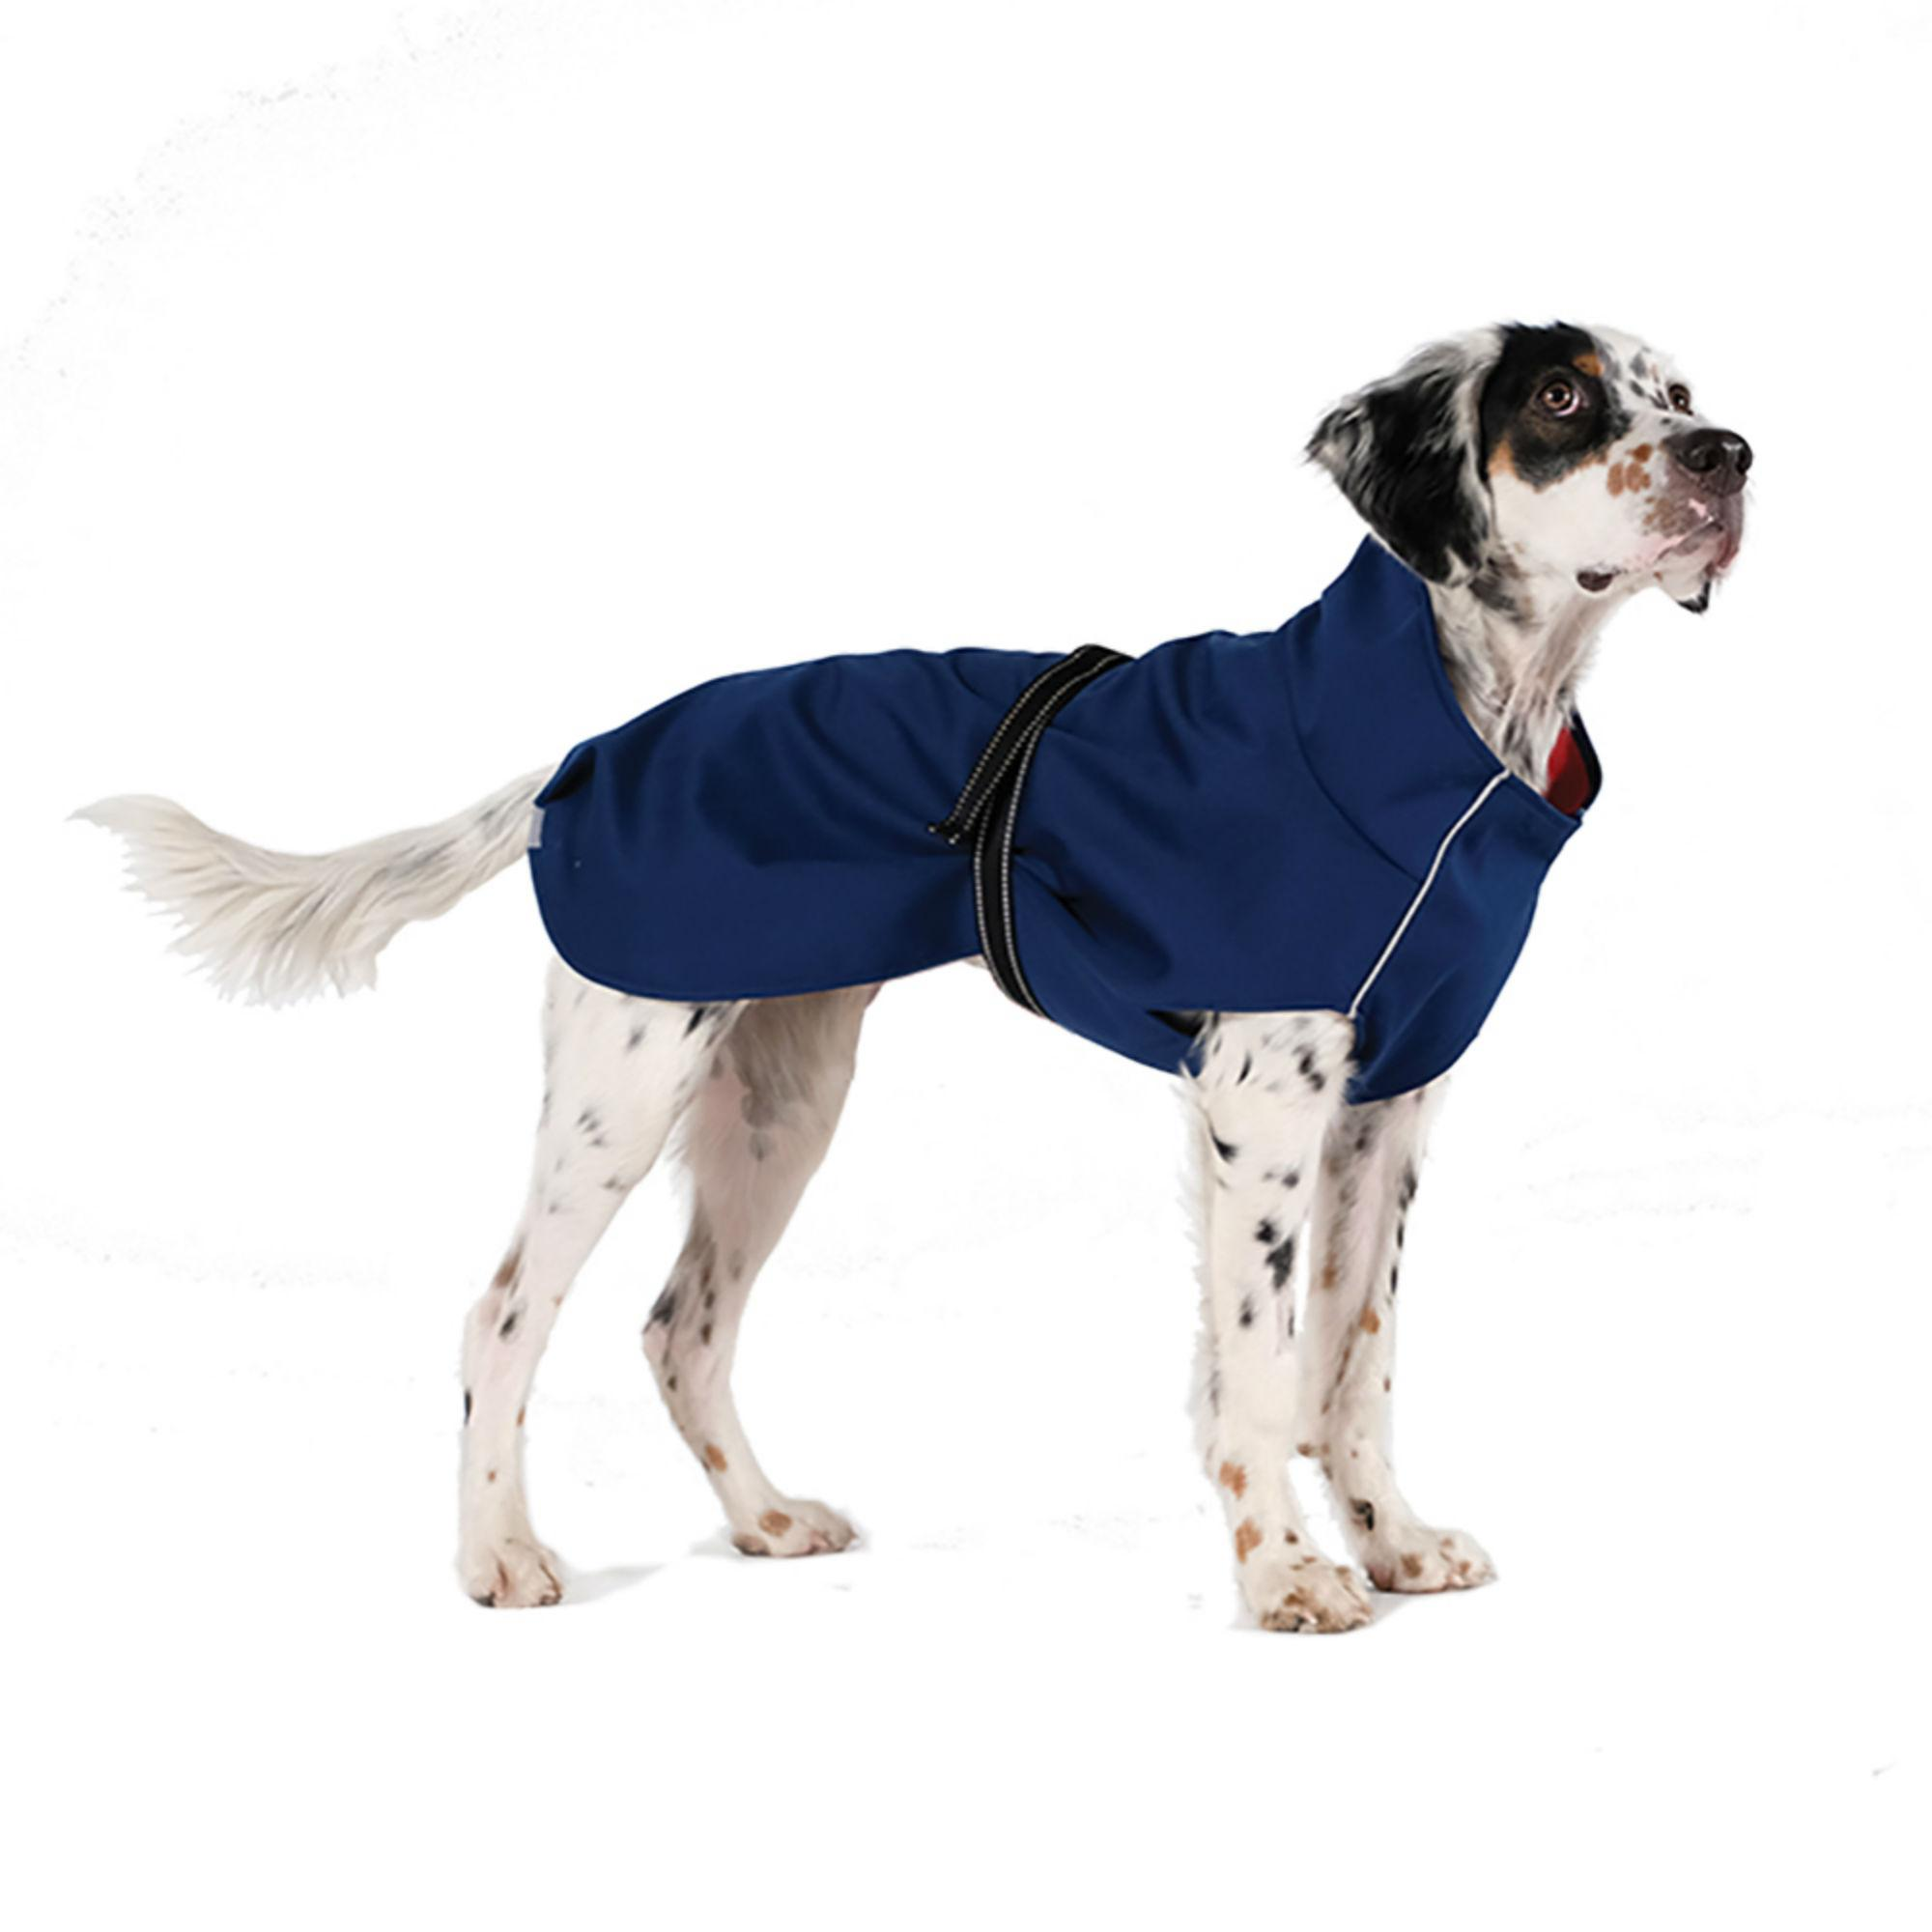 Rain Paw Dog Raincoat by Gold Paw - Navy